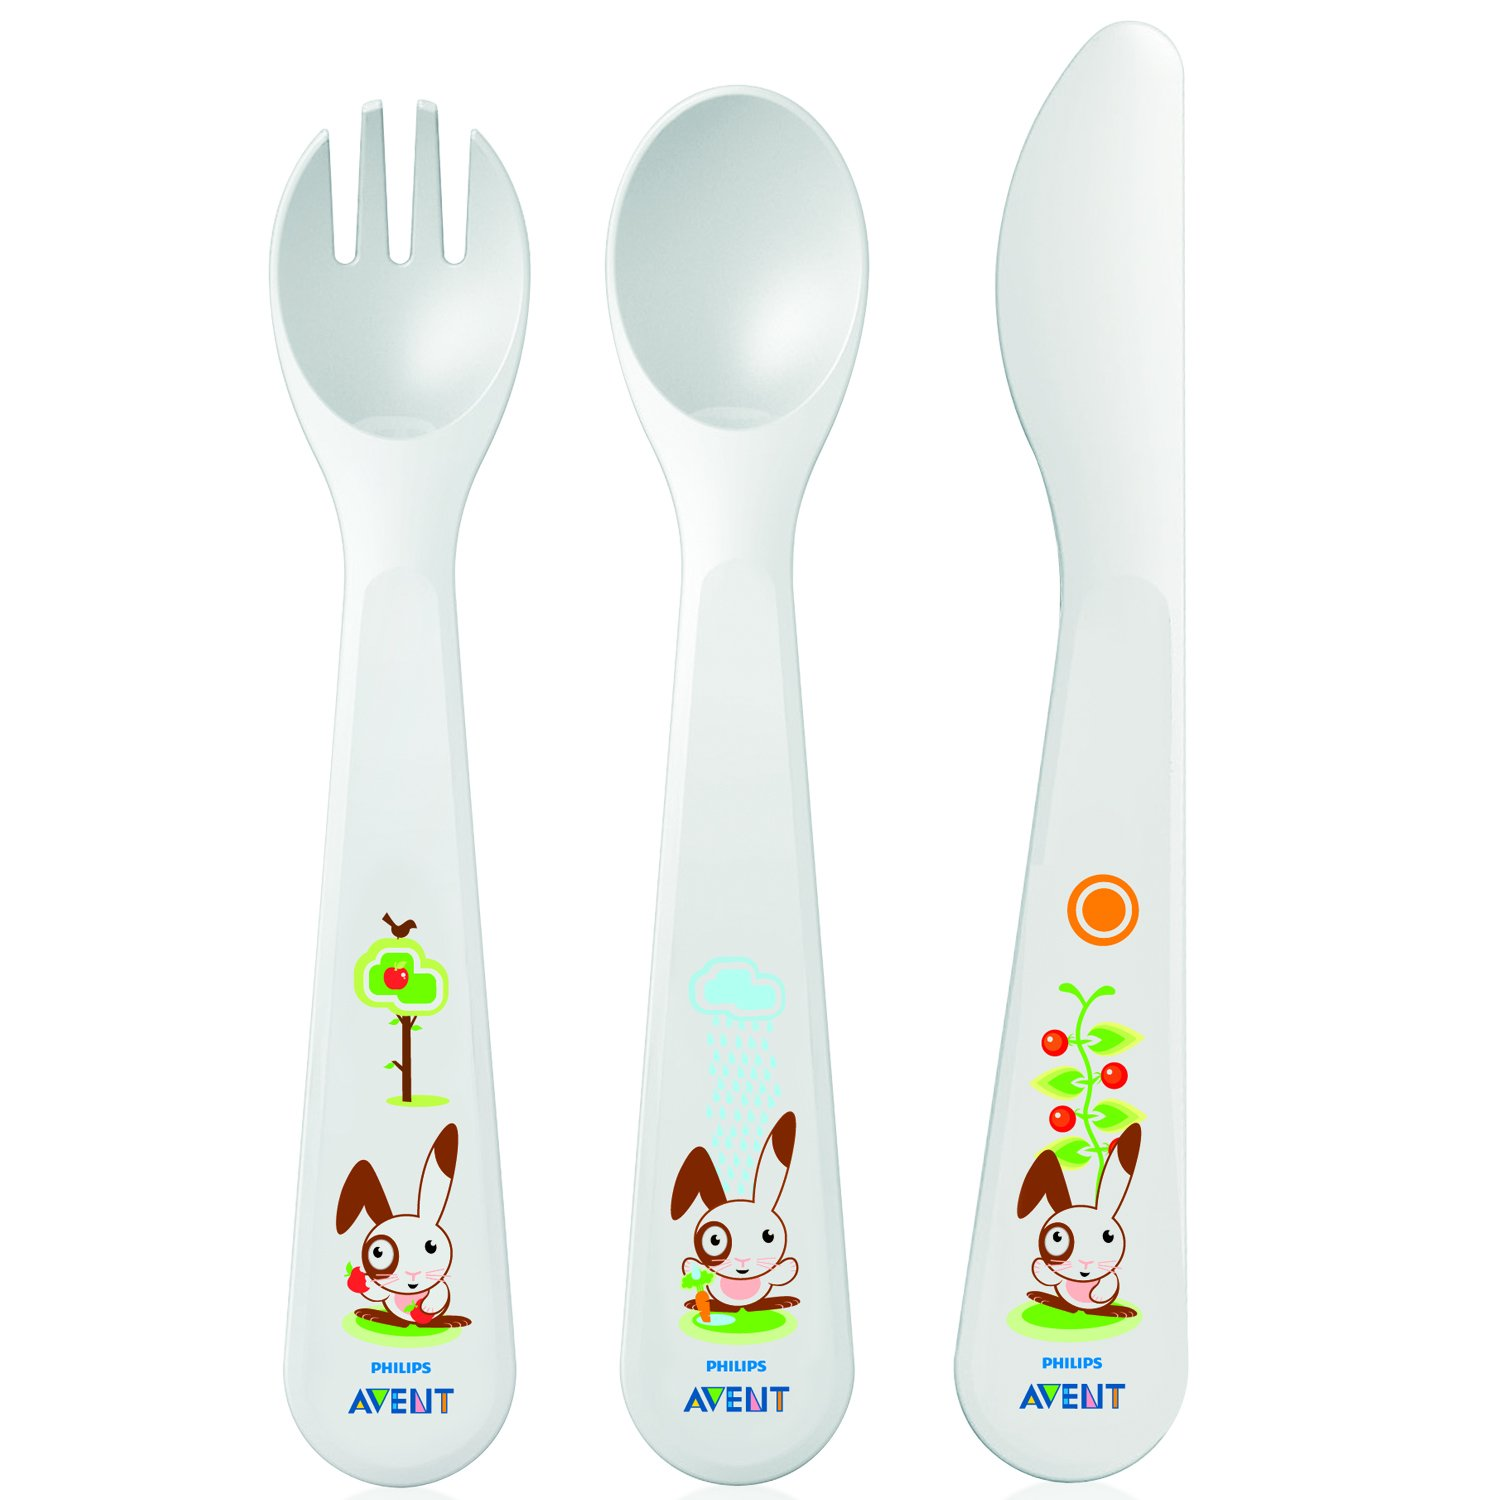 Philips Avent Knife Fork Spoon +18 Months